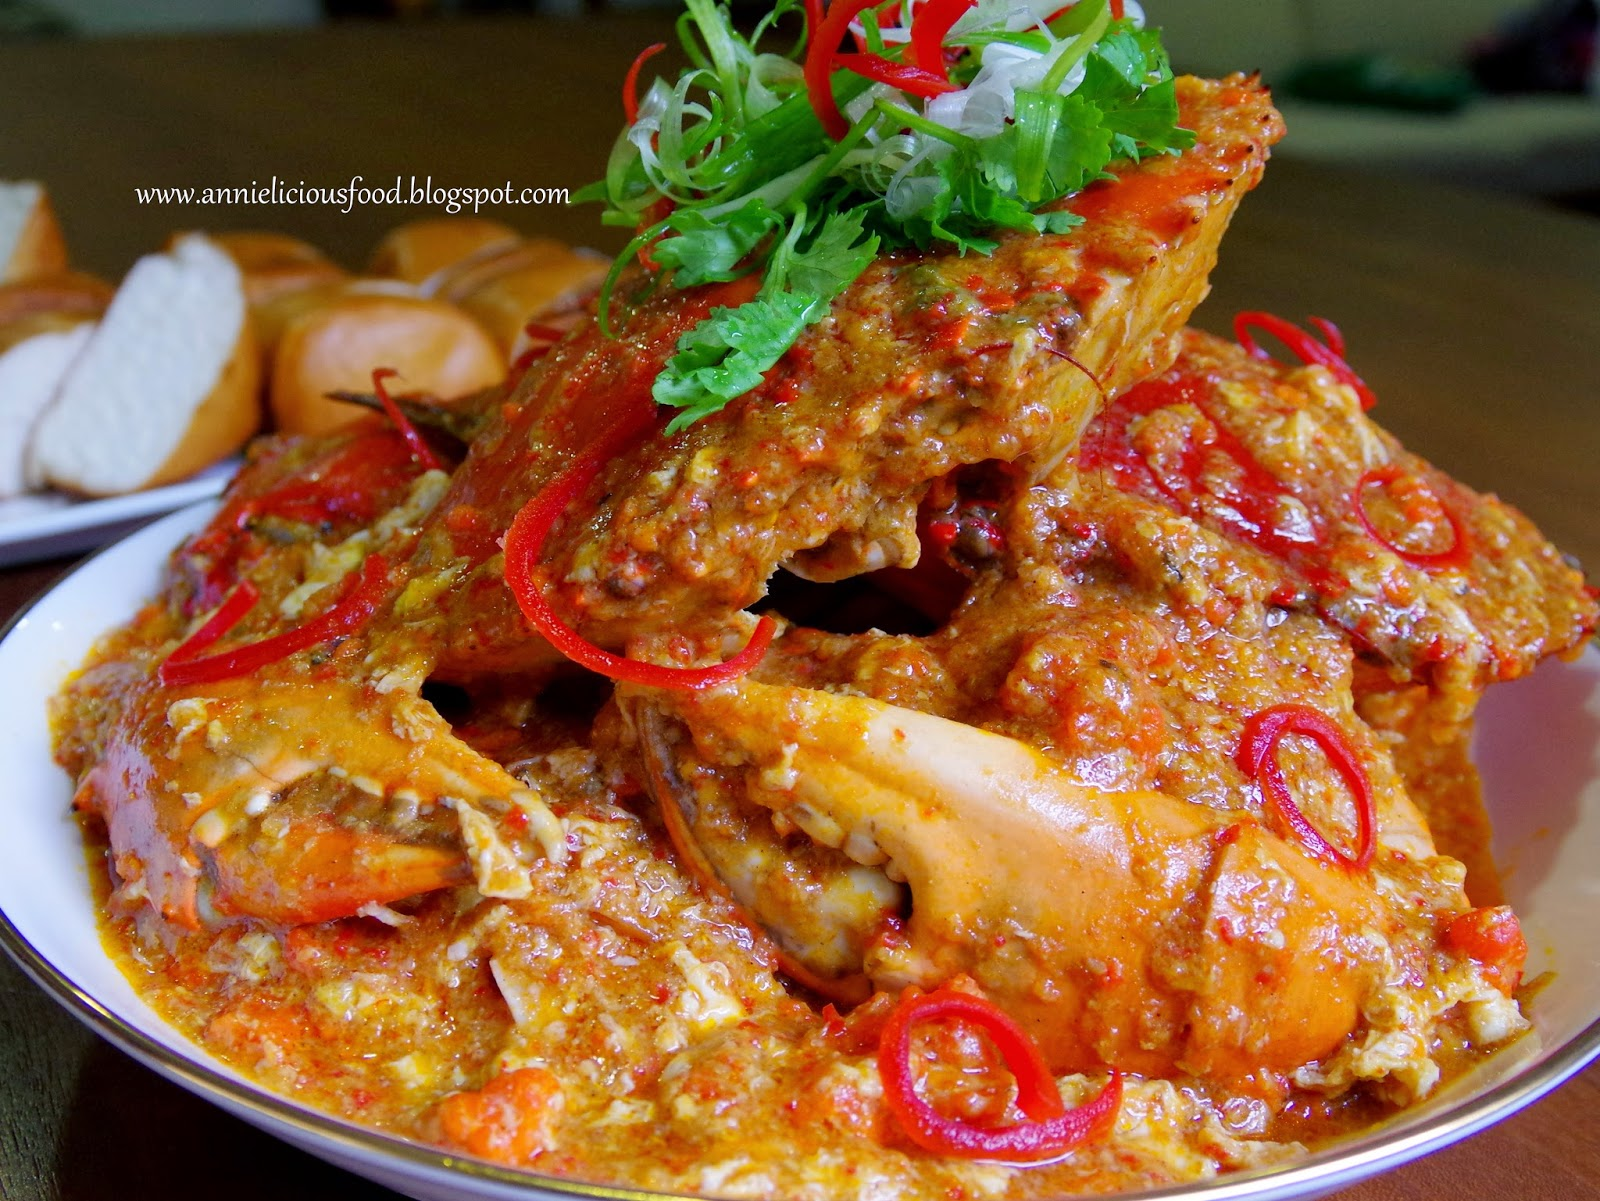 Annielicious food best singapore chilli crab aff i adapted this recipe from chef master classes on his worlds best singapore chilli crab recipe which he mentioned that his recipe is based on a food trip forumfinder Choice Image